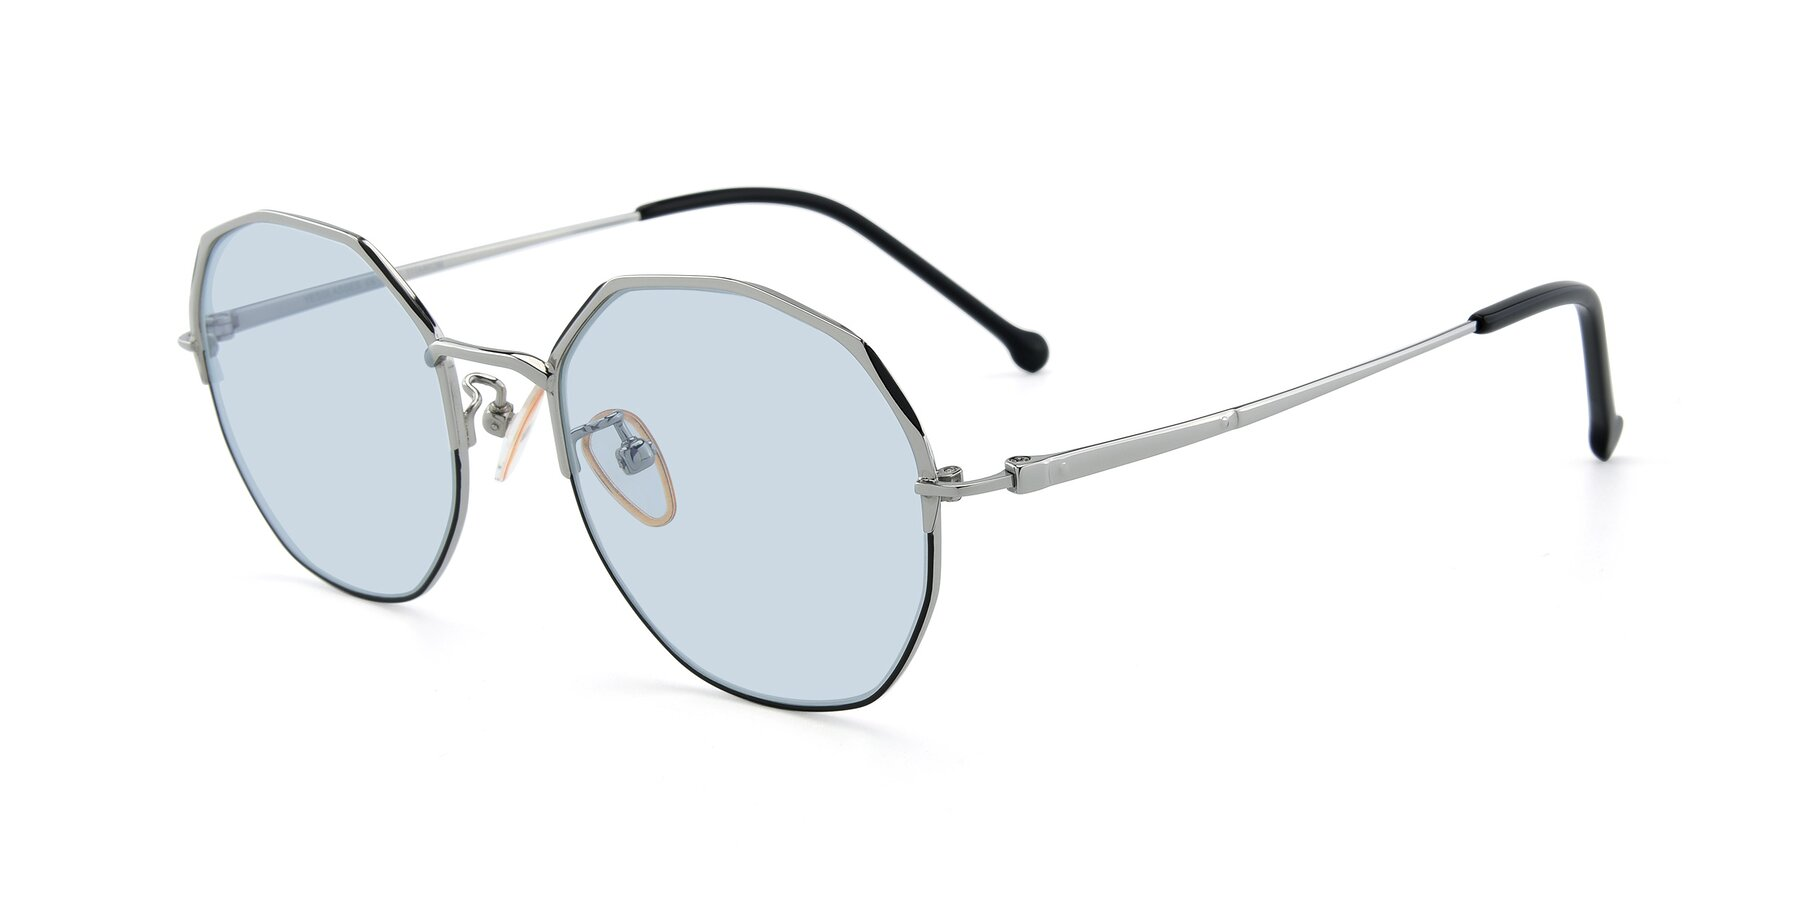 Angle of 18020 in Black-Silver with Light Blue Tinted Lenses